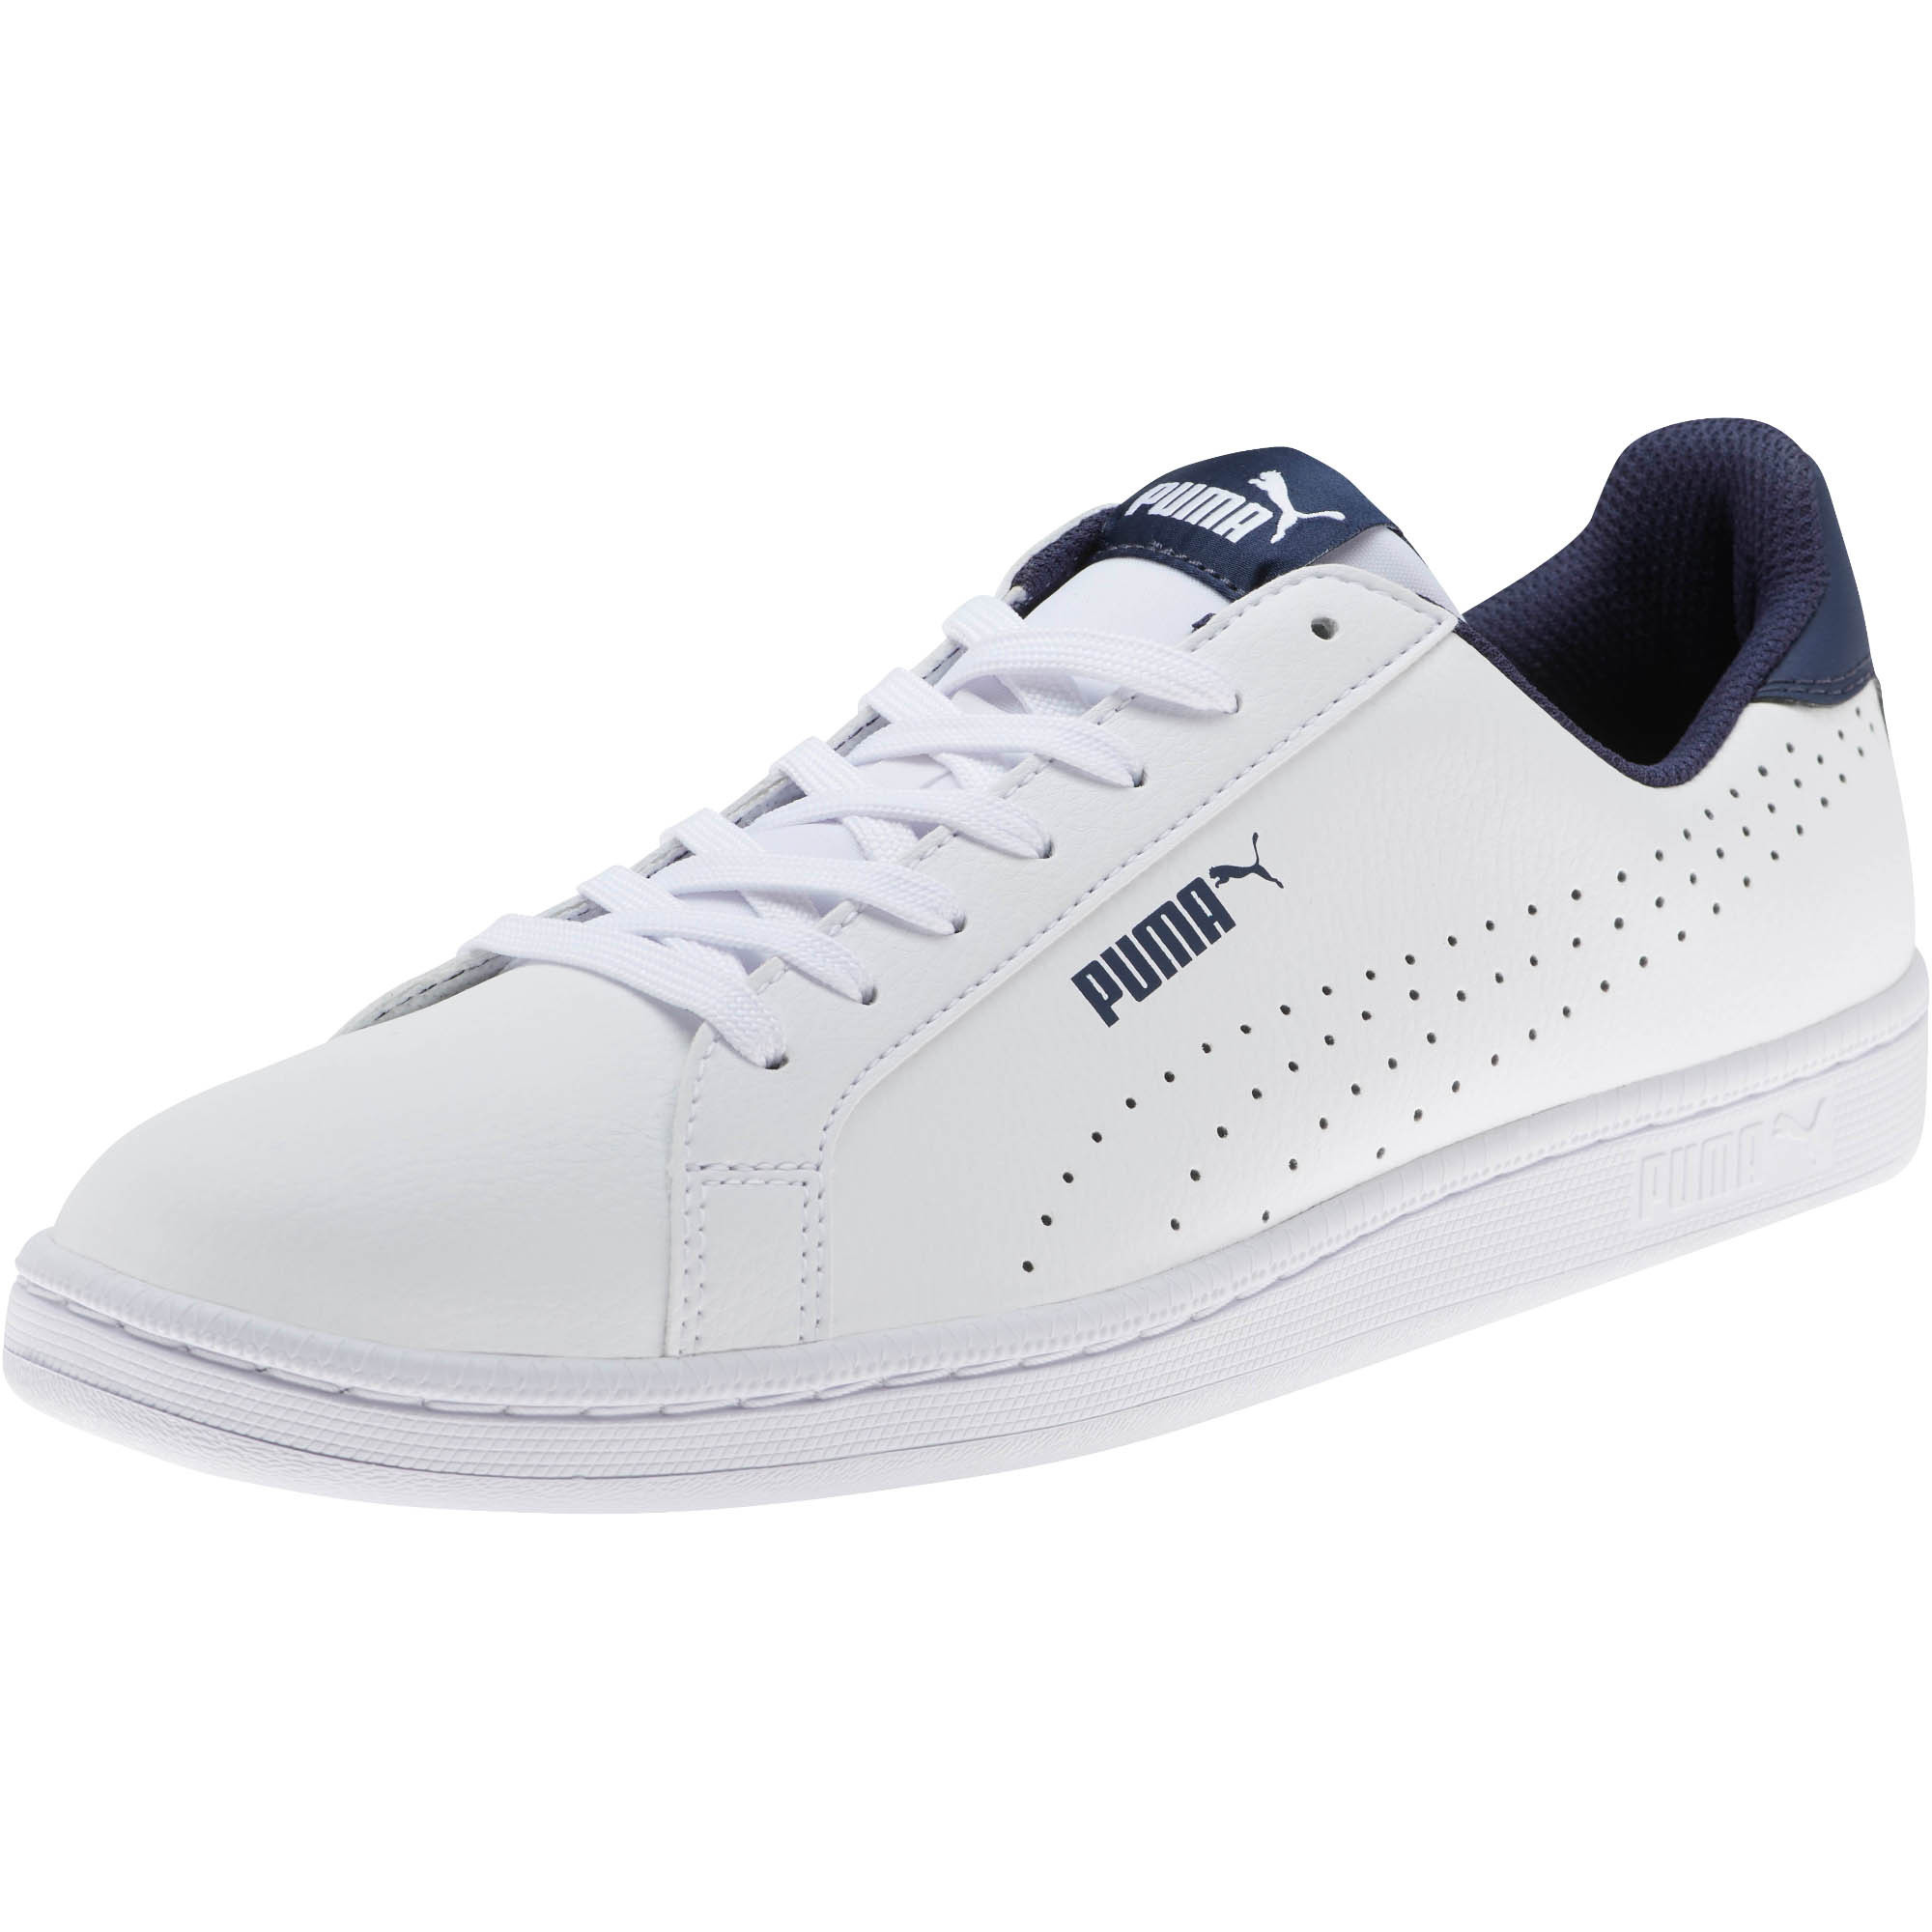 PUMA-PUMA-Smash-Perf-Men-039-s-Sneakers-Men-Shoe-Basics thumbnail 4